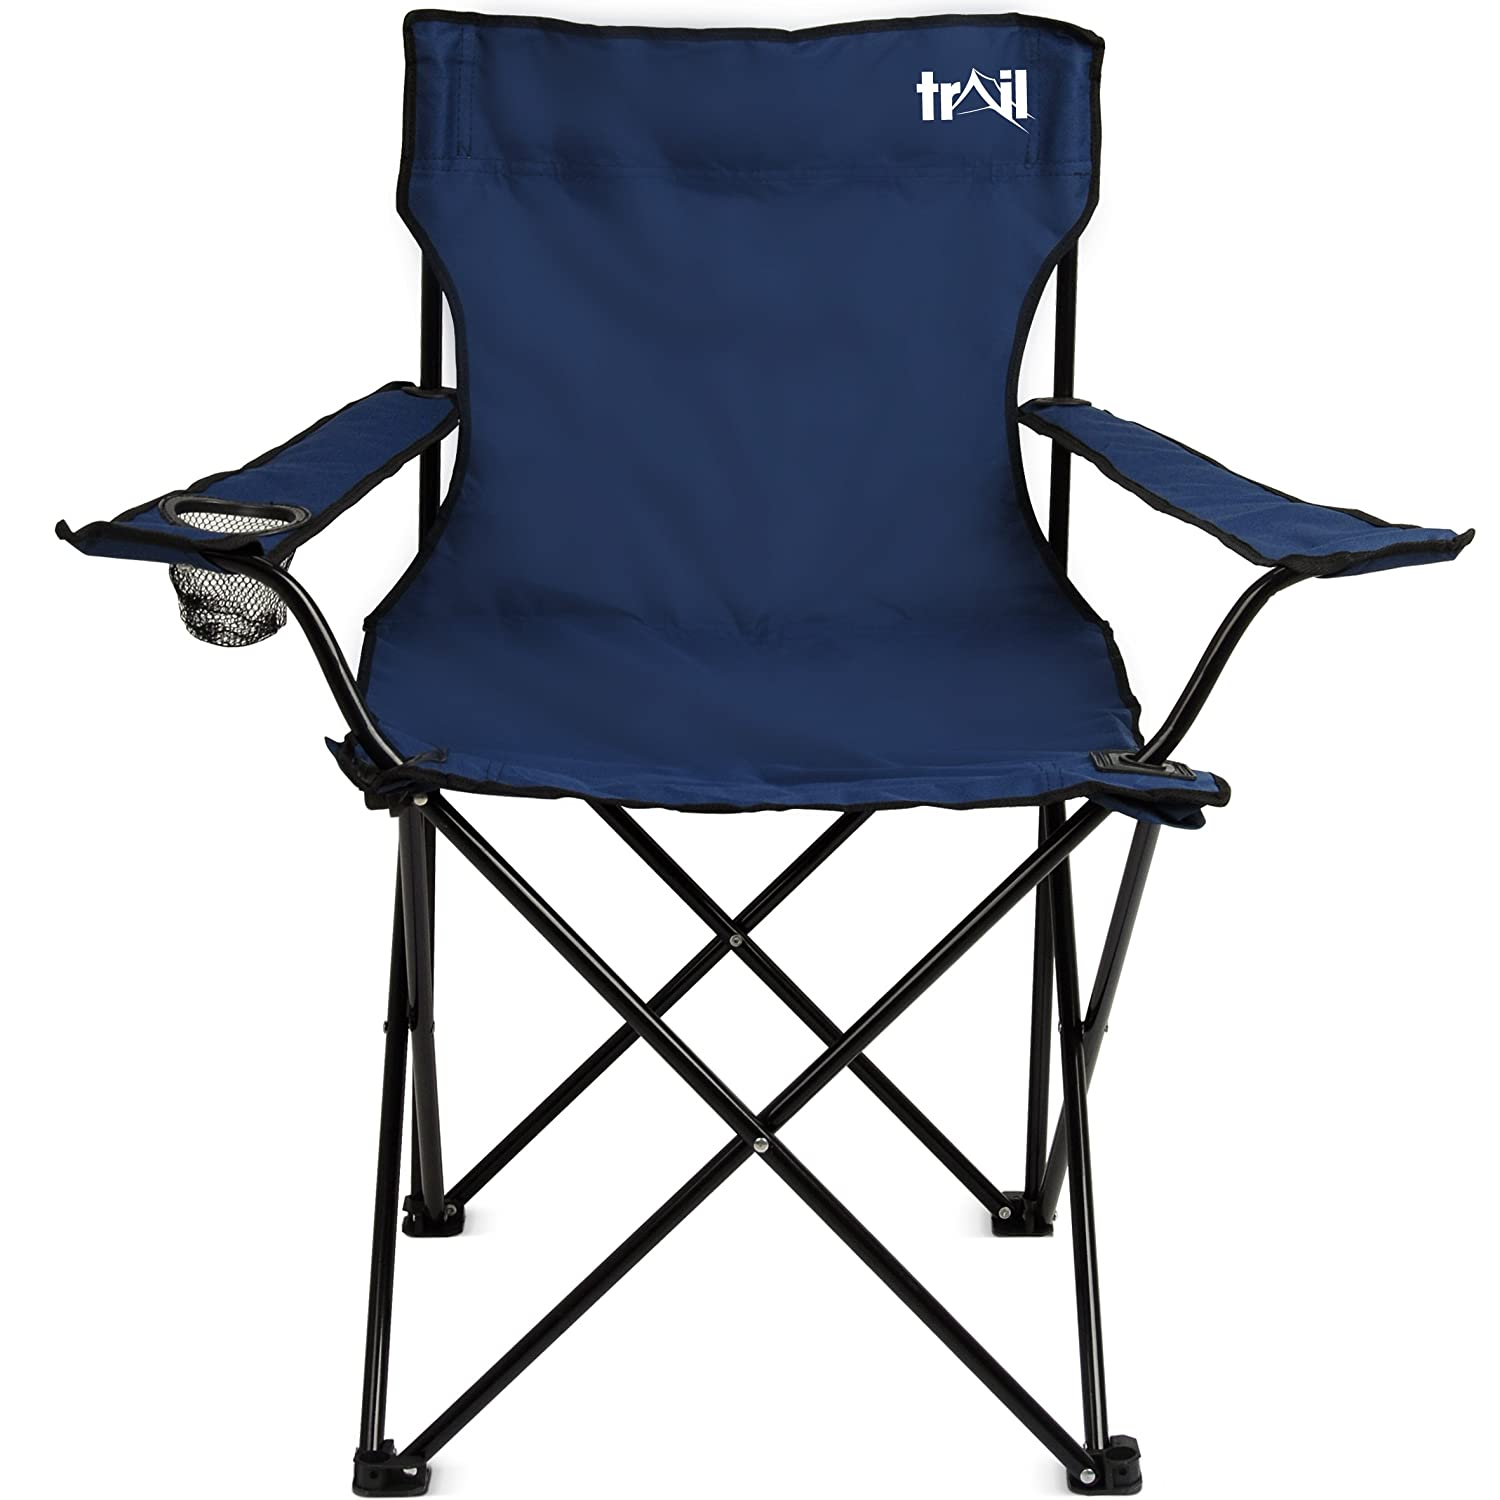 Trail Folding Camping Chairs Fold Up Camp Festival Fishing Chair